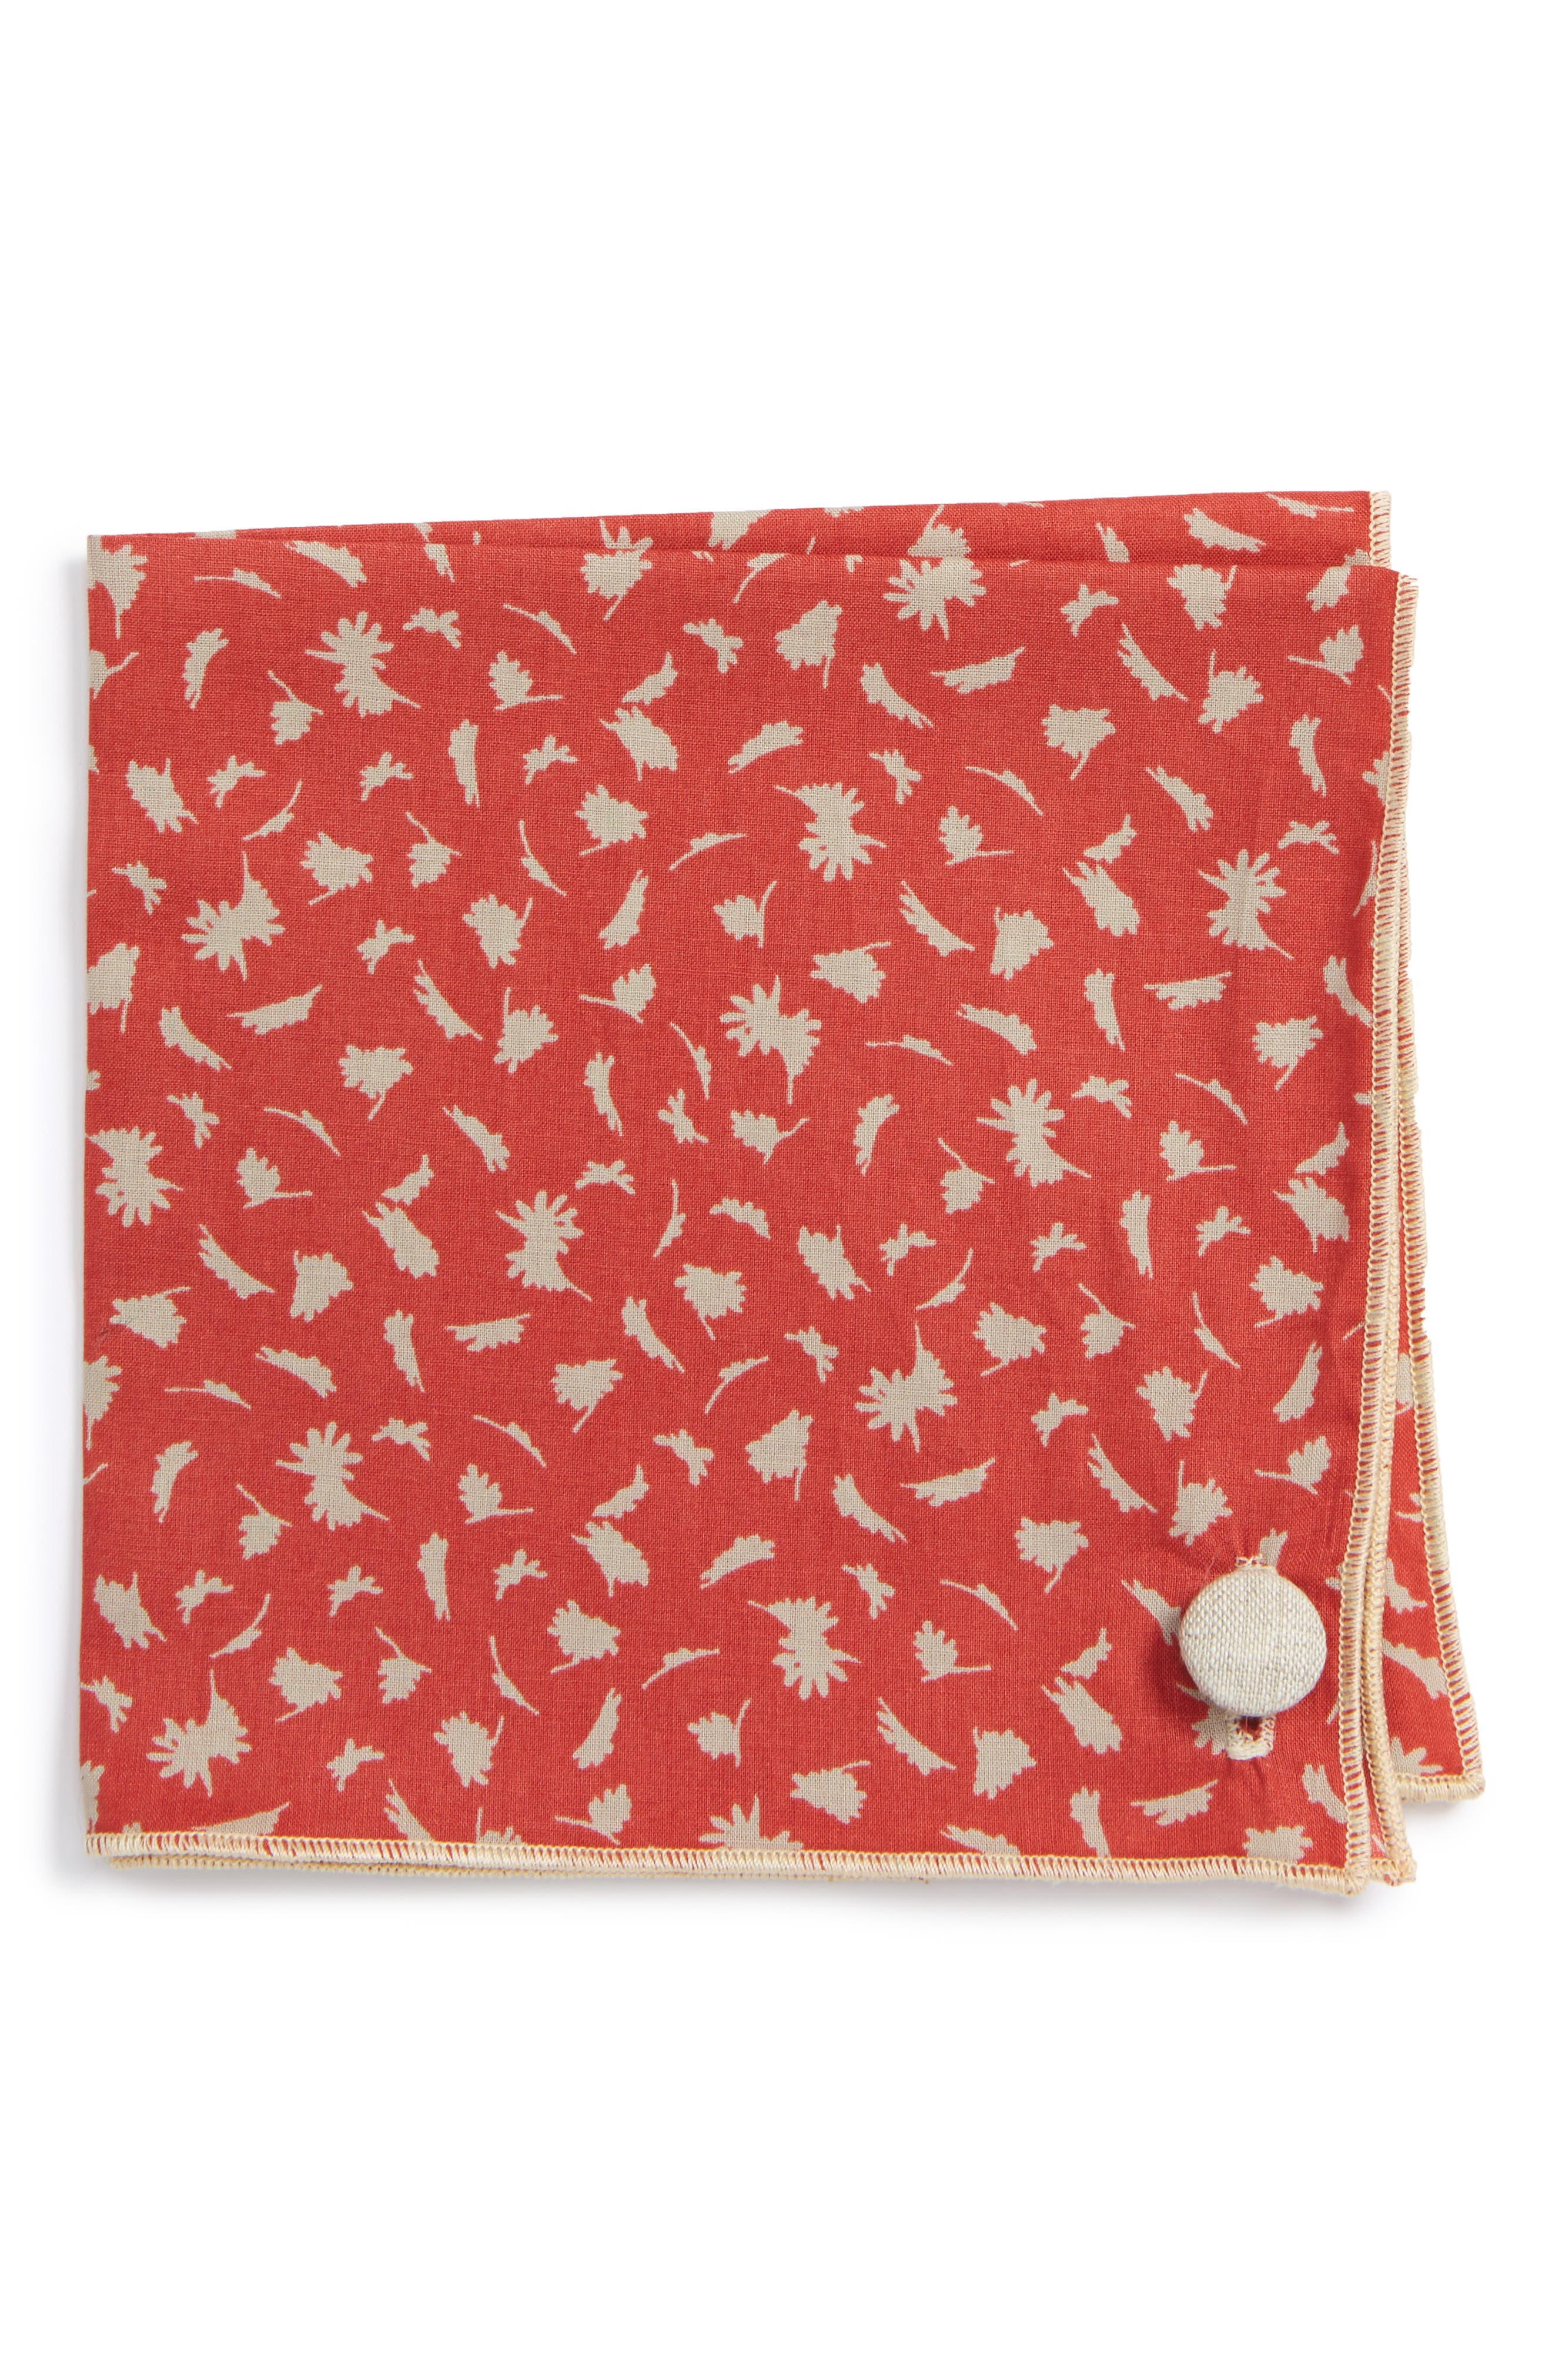 Armstrong & Wilson Pale Flowers Cotton Pocket Square